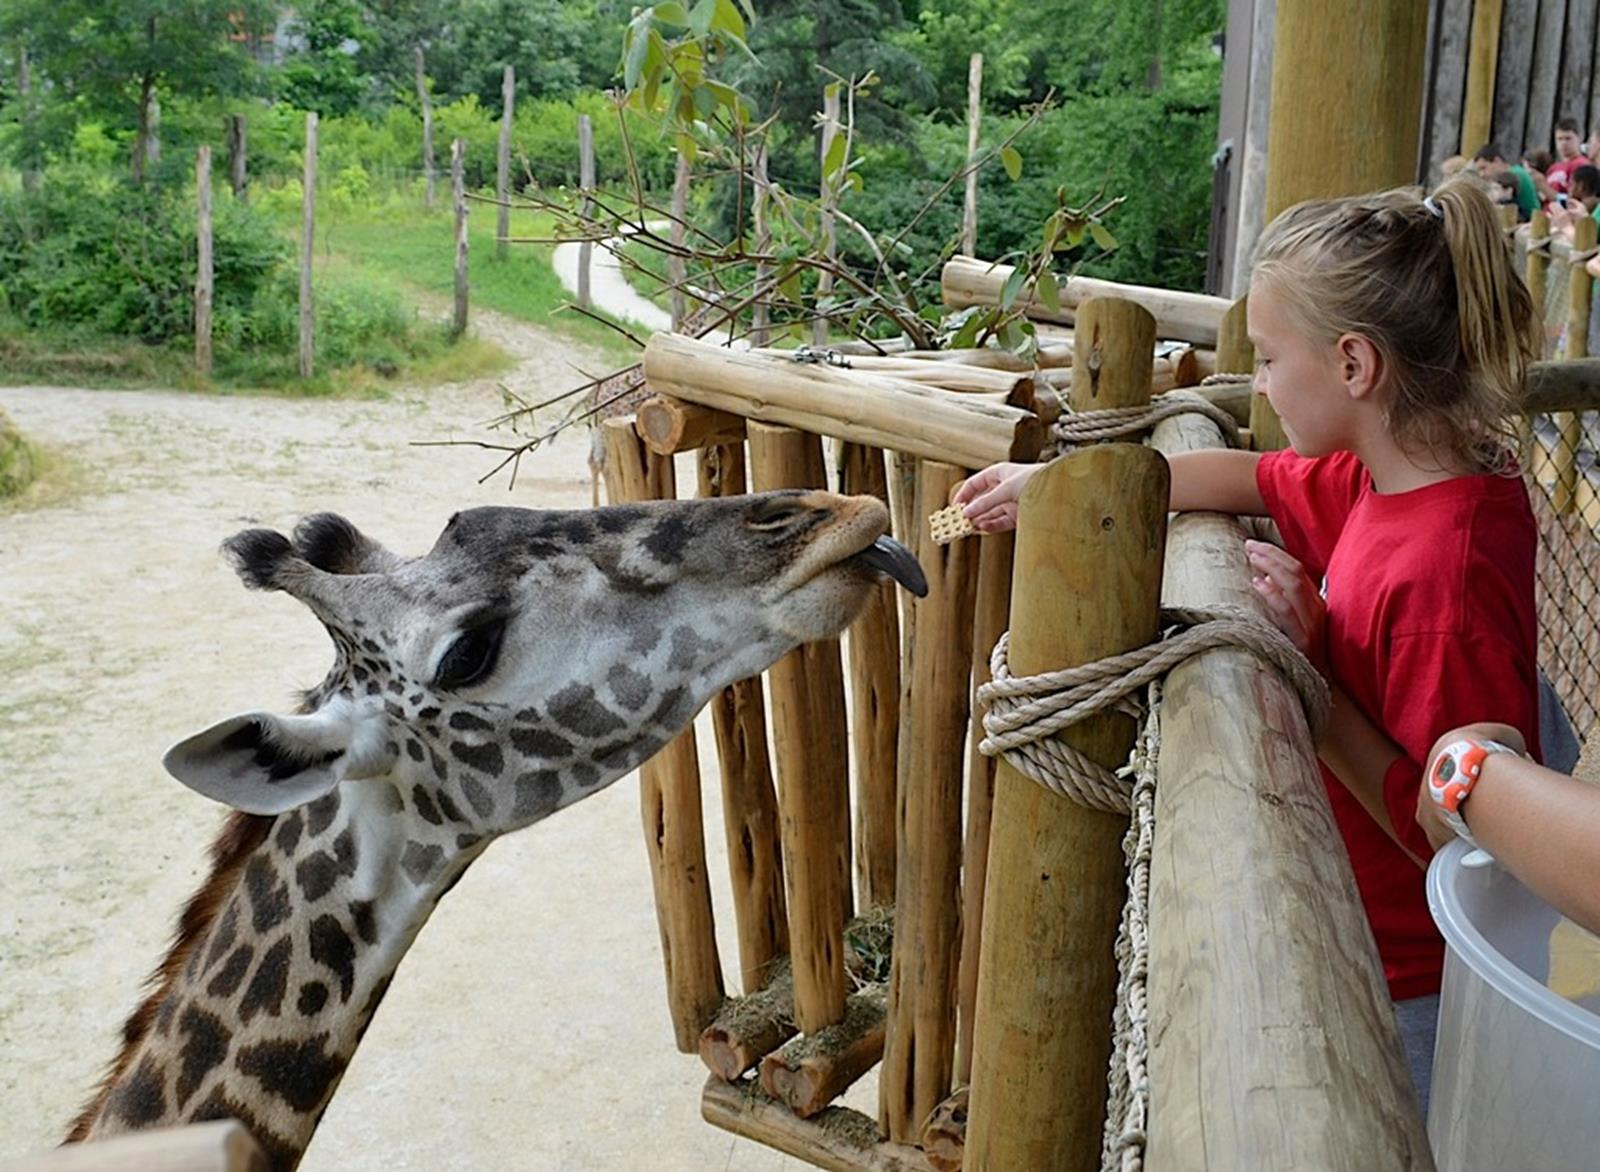 Giraffe Ridge at Cincinnati Zoo. Credit: Michelle Curley